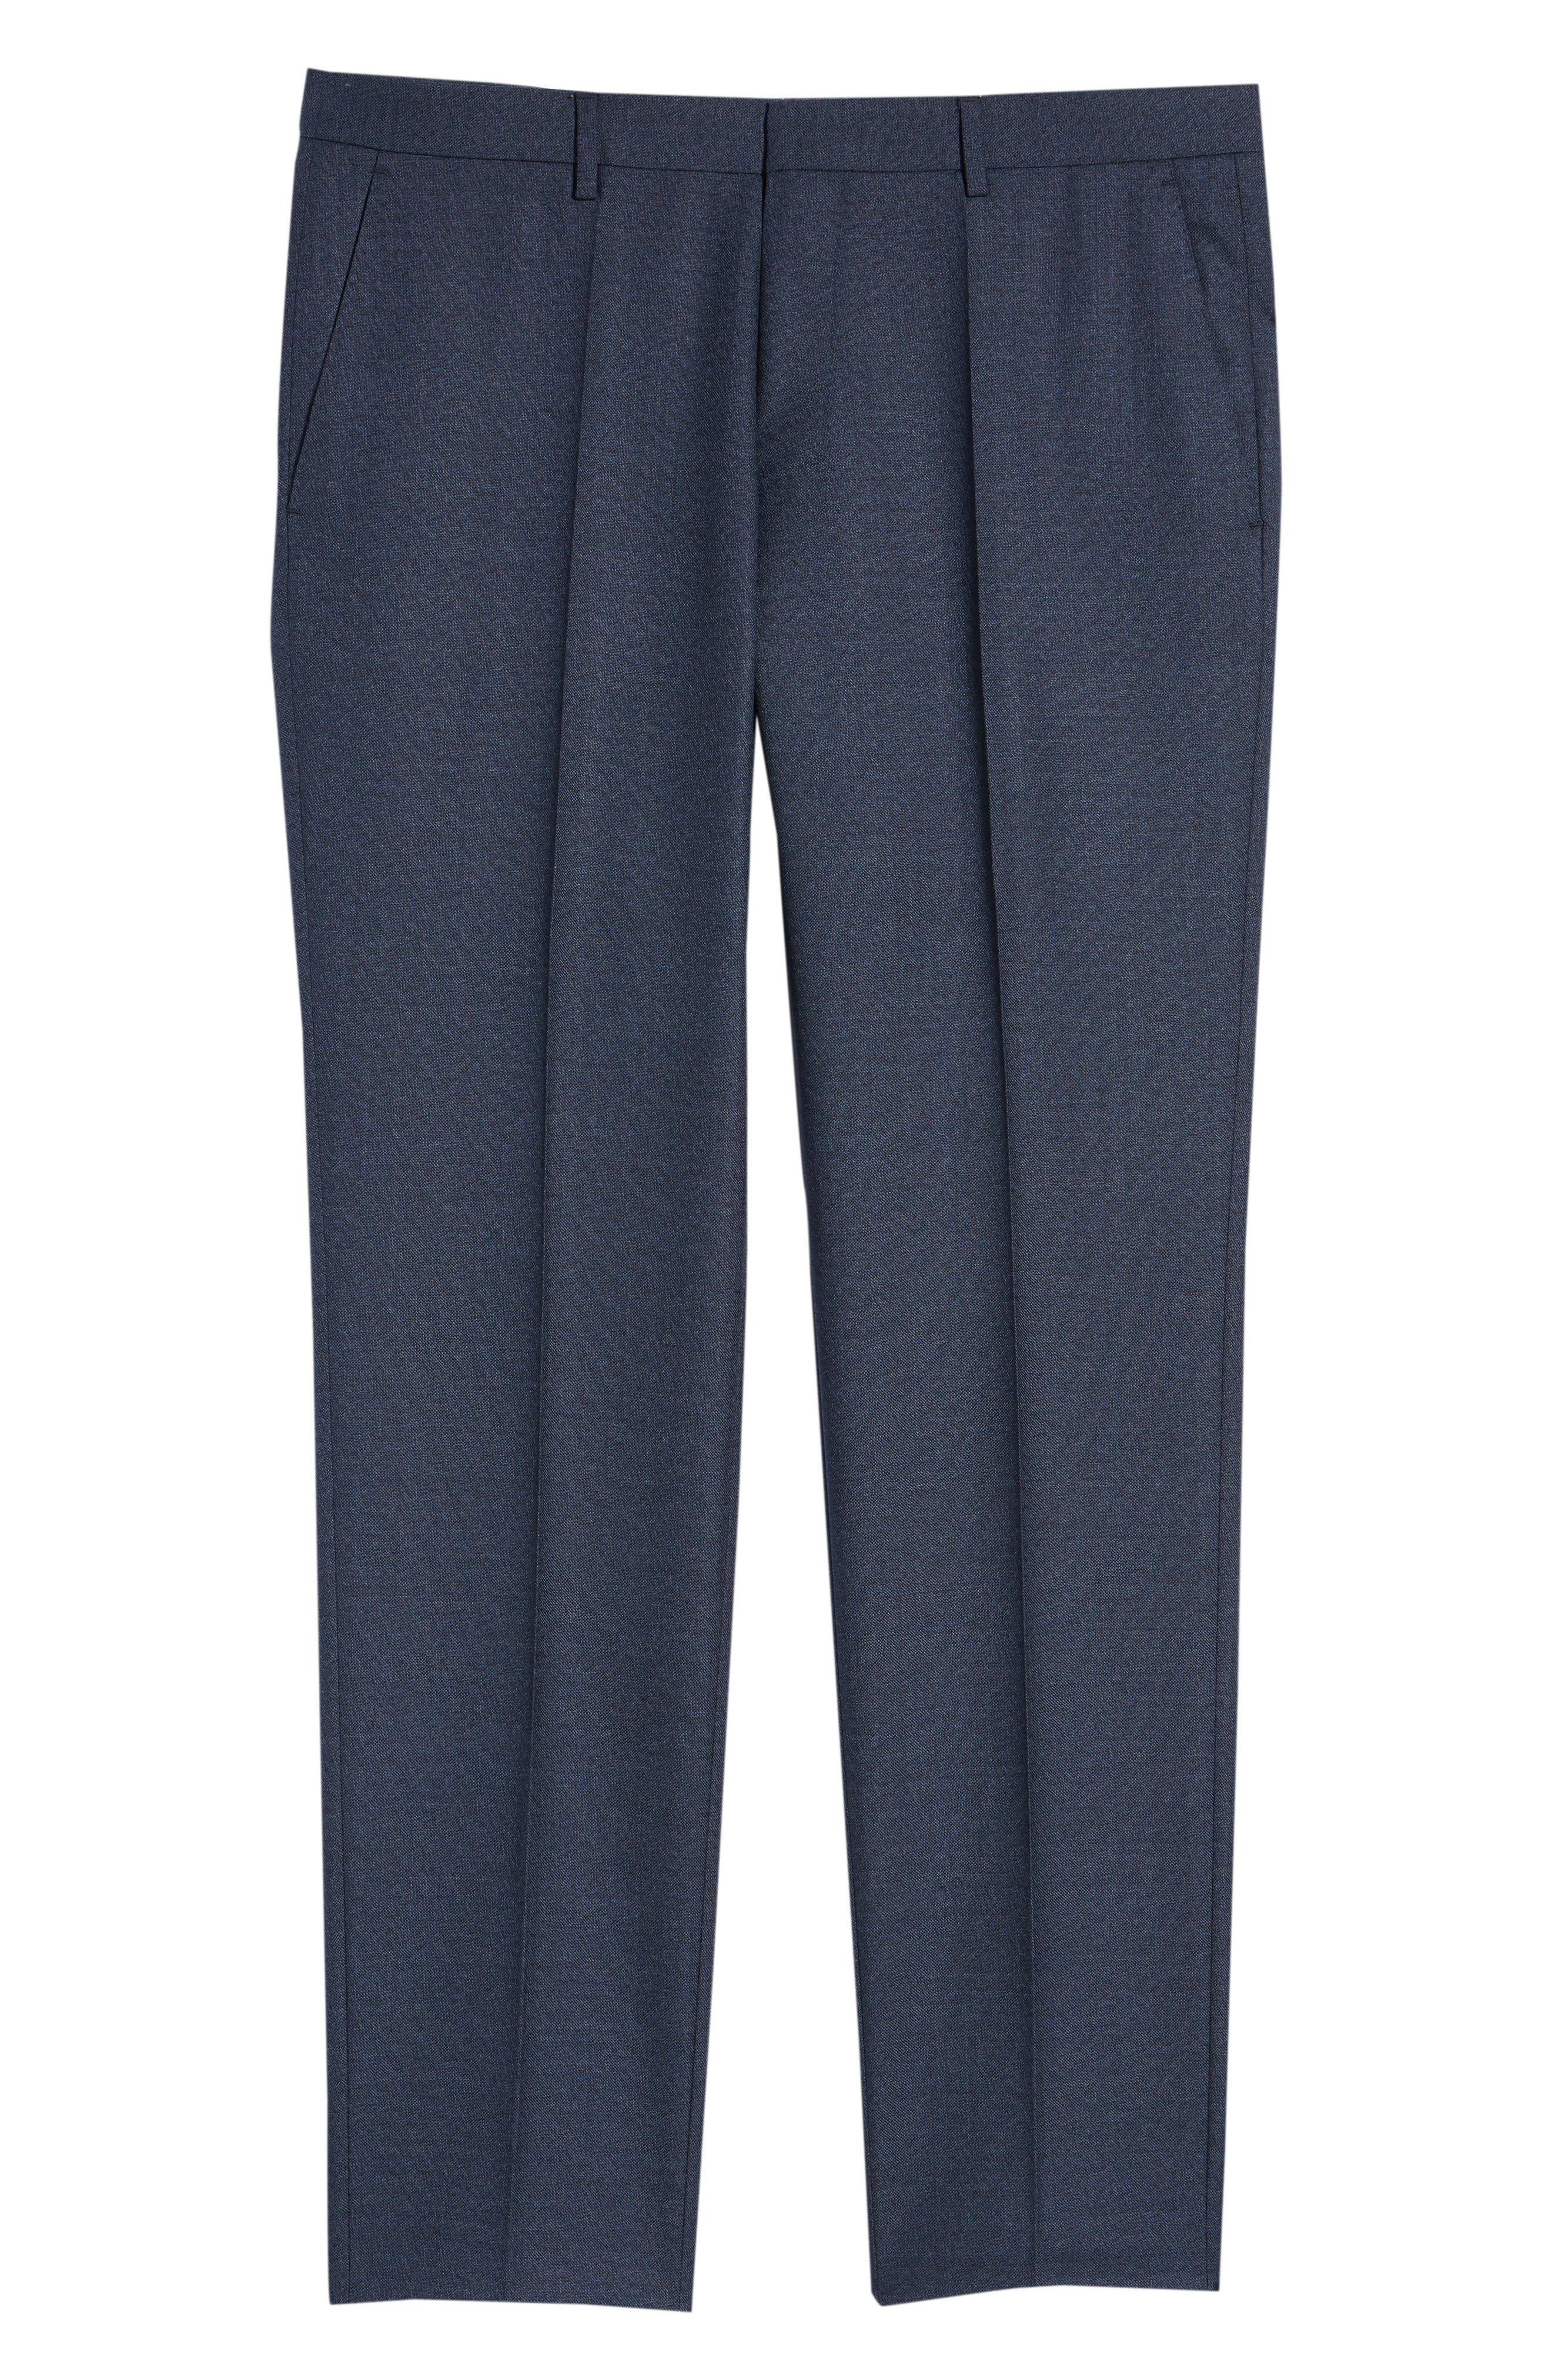 Genesis Flat Front Solid Wool Trousers,                             Alternate thumbnail 6, color,                             OPEN BLUE